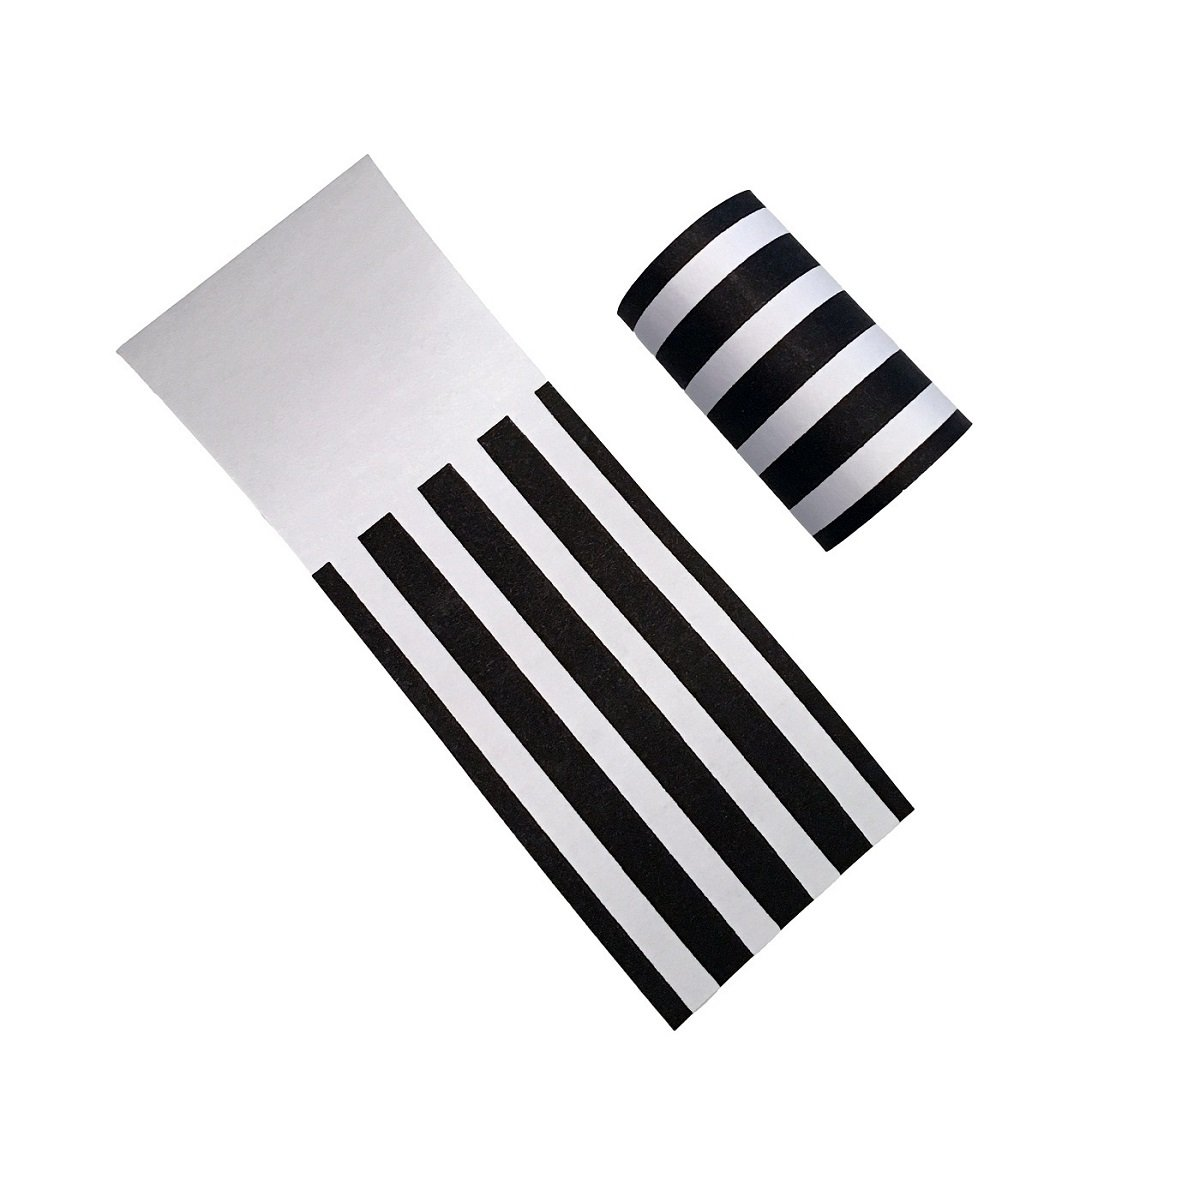 Pack of 40 The French Concept Decorative Self-Adhesive Paper Napkin Bands Compliment Black and White Party Supplies